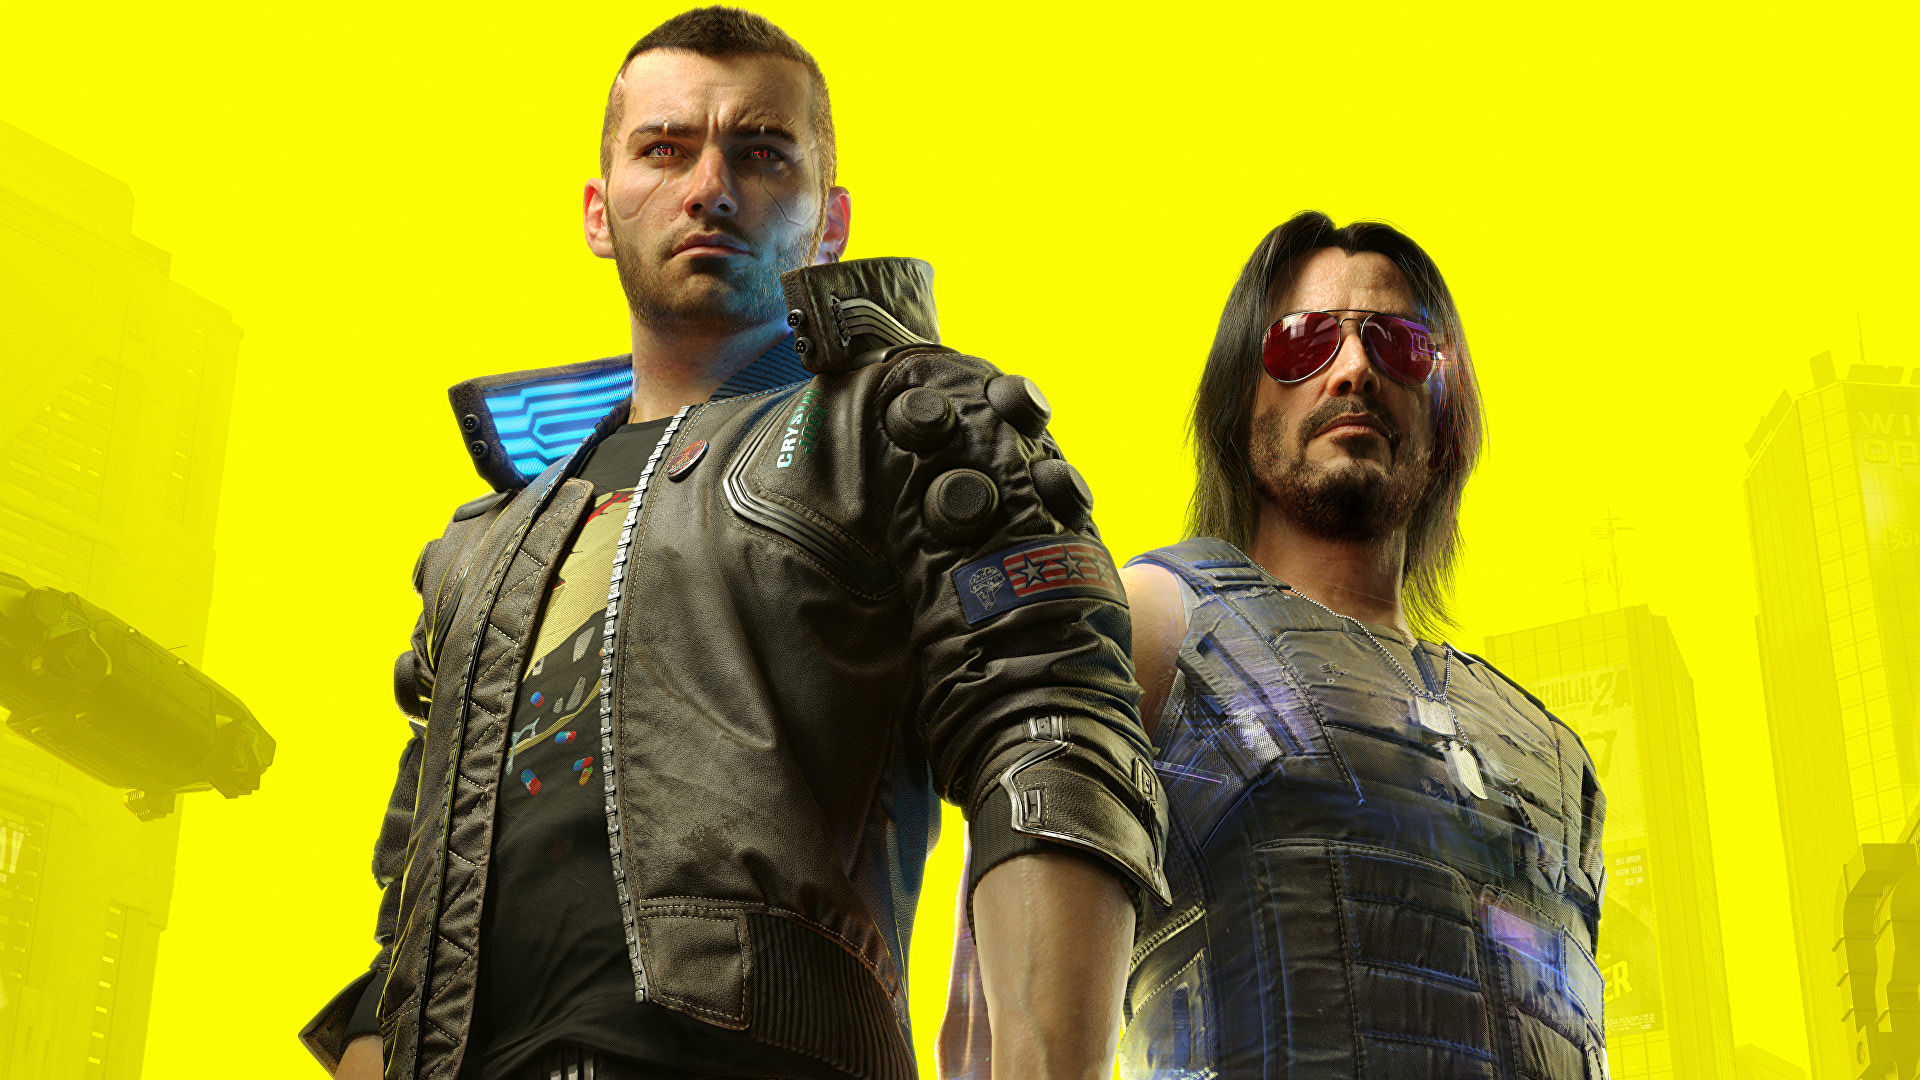 Cyberpunk 2077 developers CD Projekt Red have been hacked